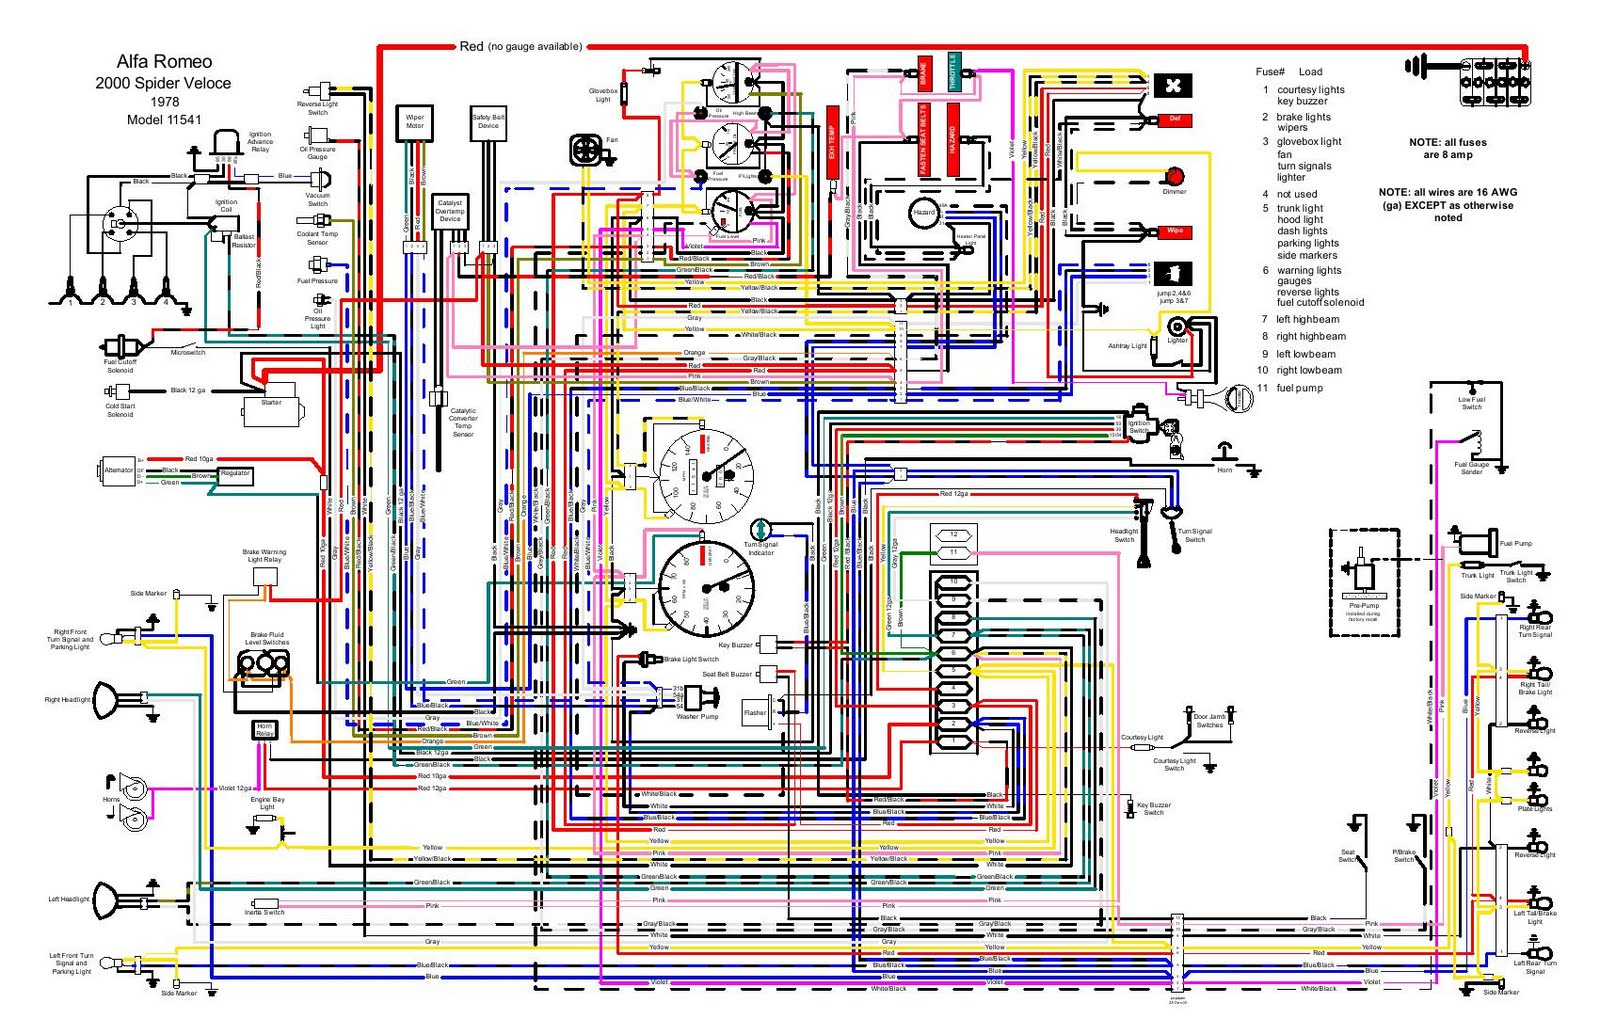 Free Auto Wiring Diagram 1978 Alfa Romeo 2000 Spider Veloce 1978 Triumph Spitfire Wiring Diagram 1972 BMW 2002 Wiring Diagram 1974 Ford Bronco Wiring Diagram At IT-Energia.com